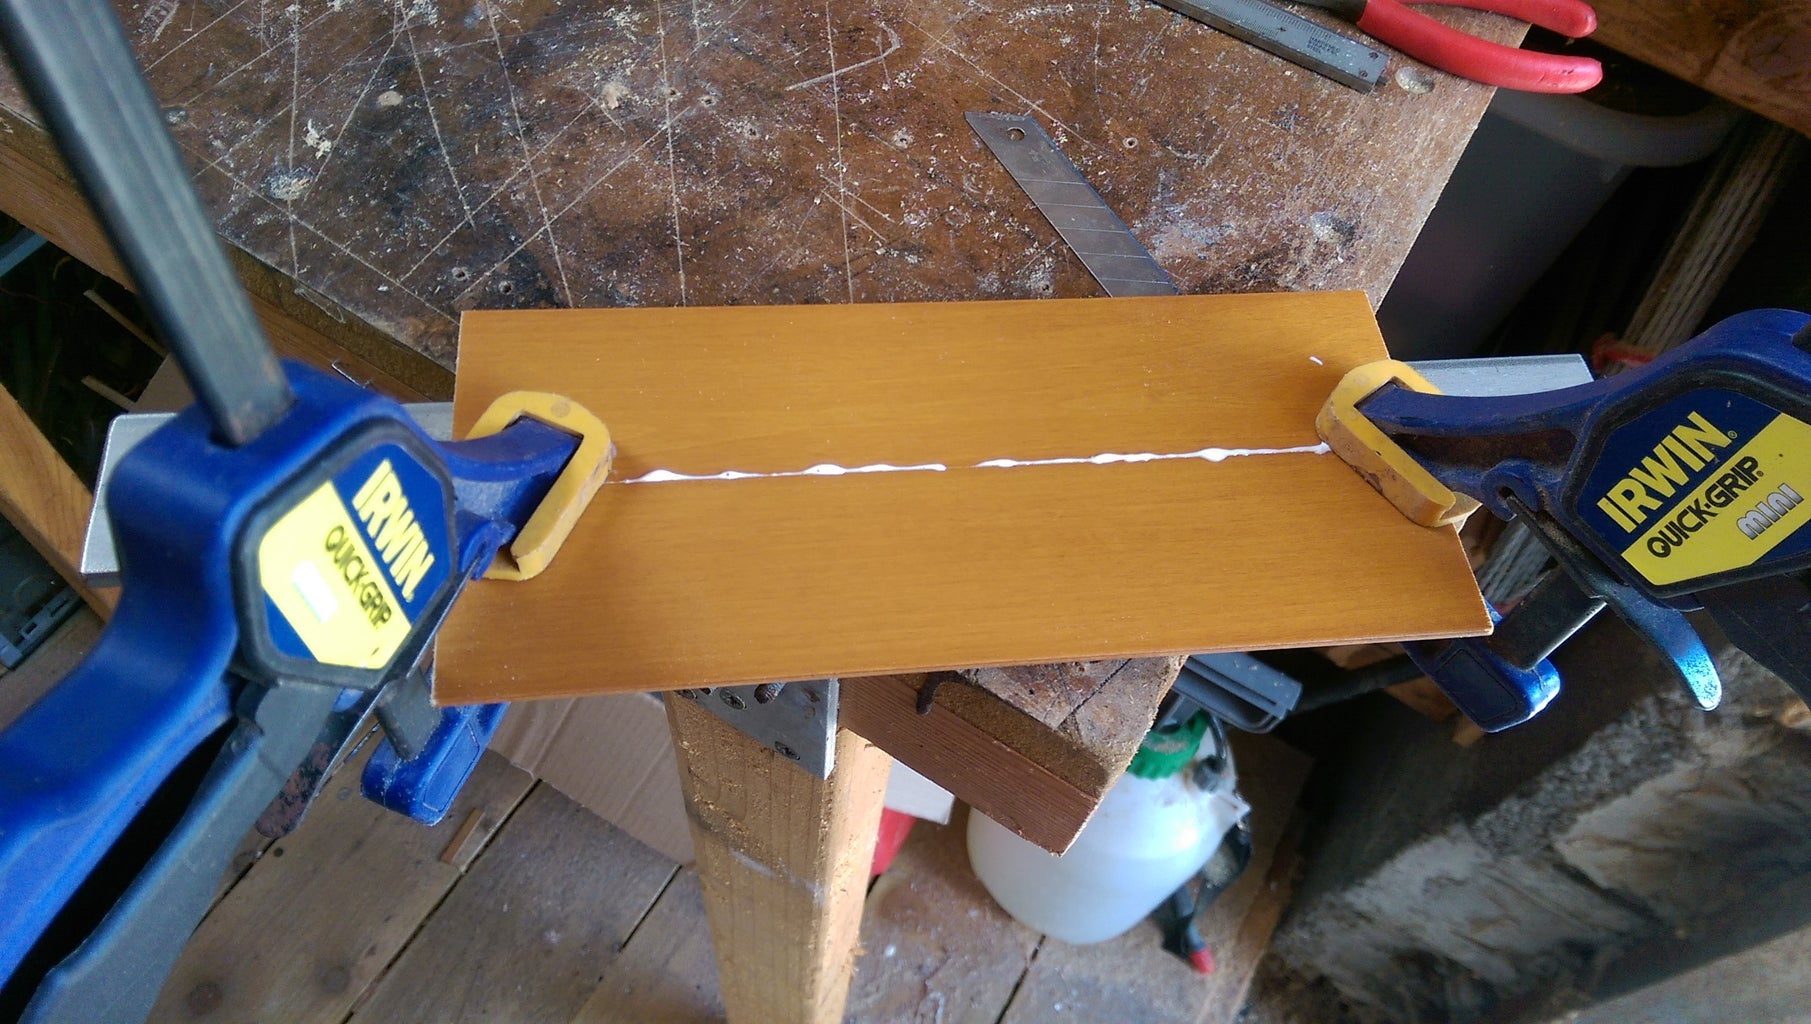 Some Wood Work, Sanding and a Prototype Followed by More Sanding!